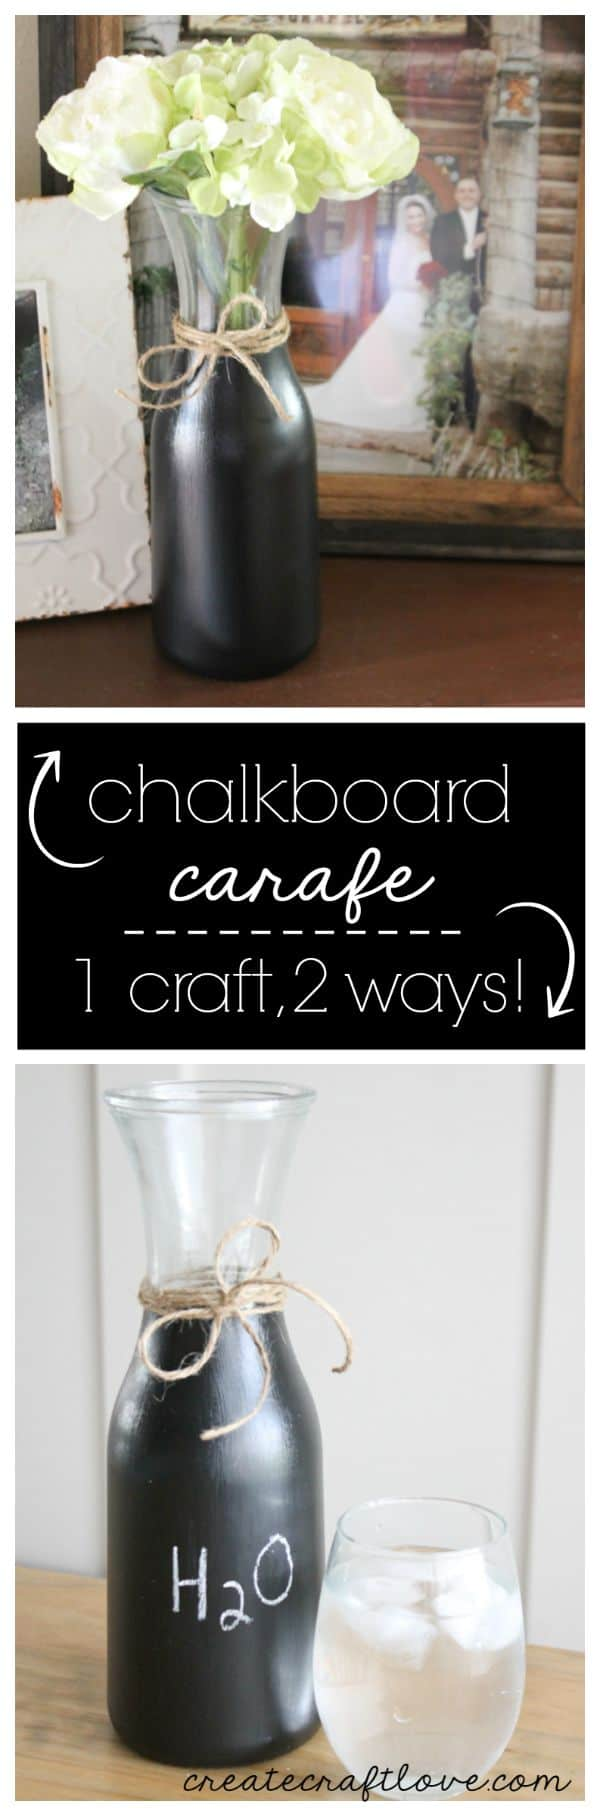 This DIY Chalkboard Carafe is so cool because it's one craft that can be used two ways!